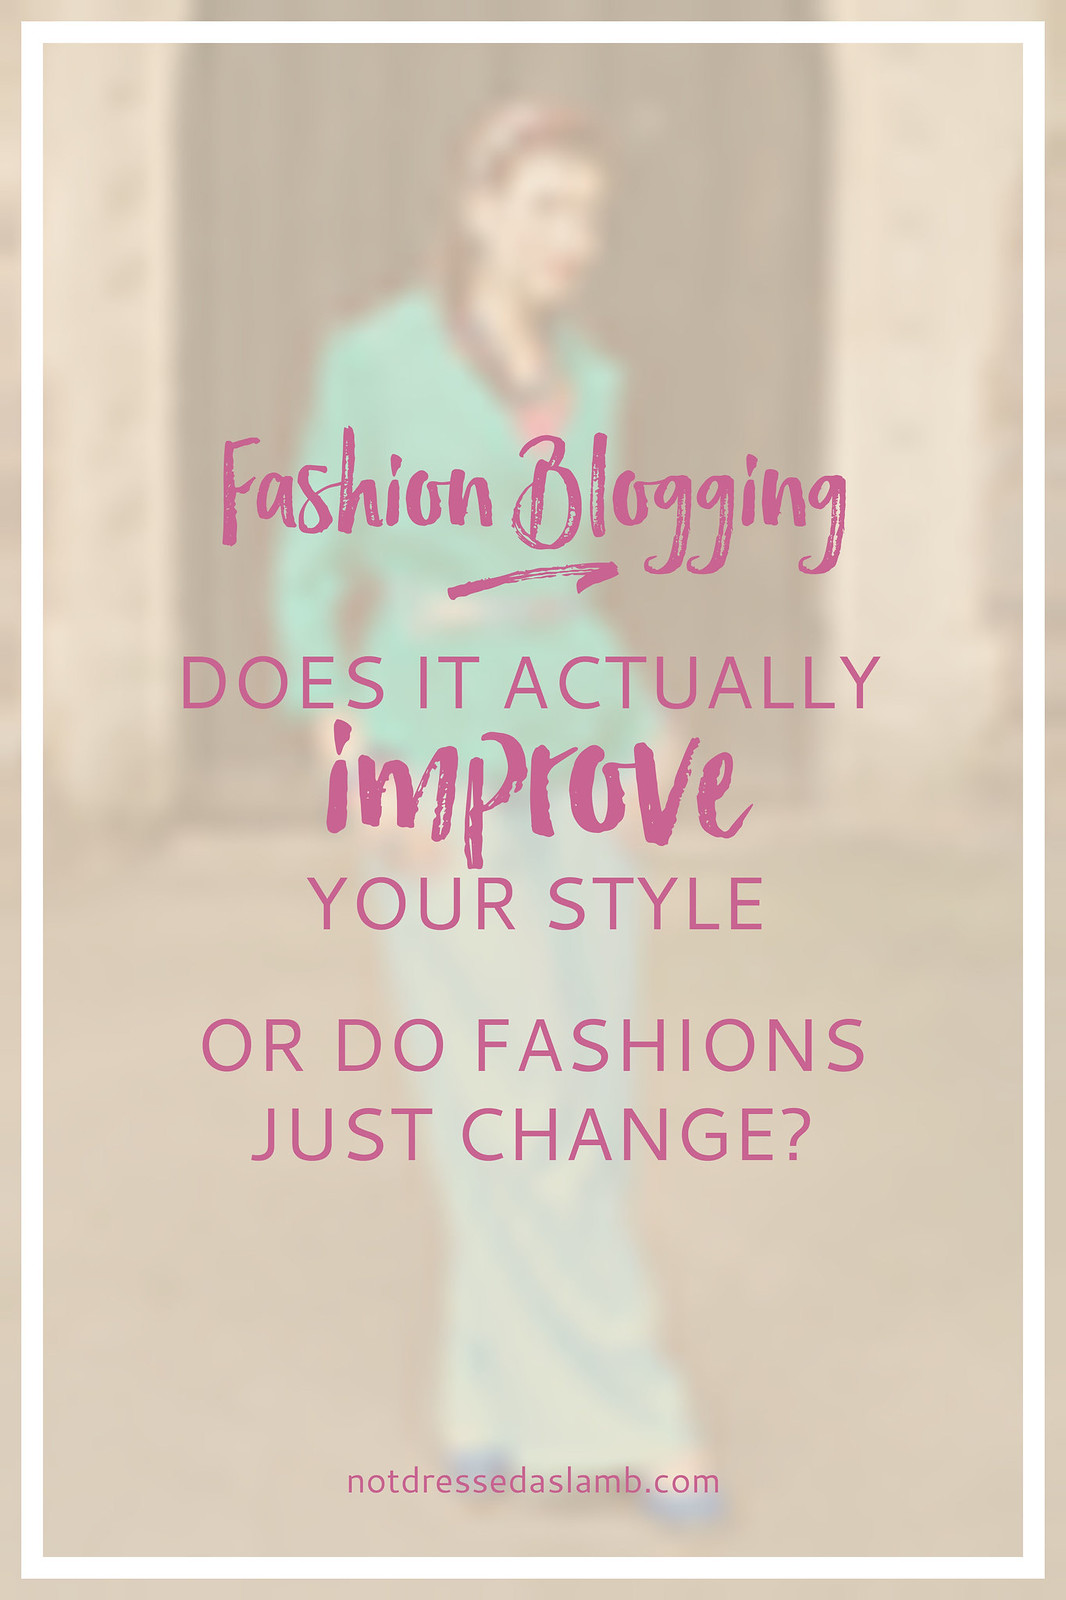 Fashion Blogging: Does It Actually Improve Your Style or Do Fashions Just Change?